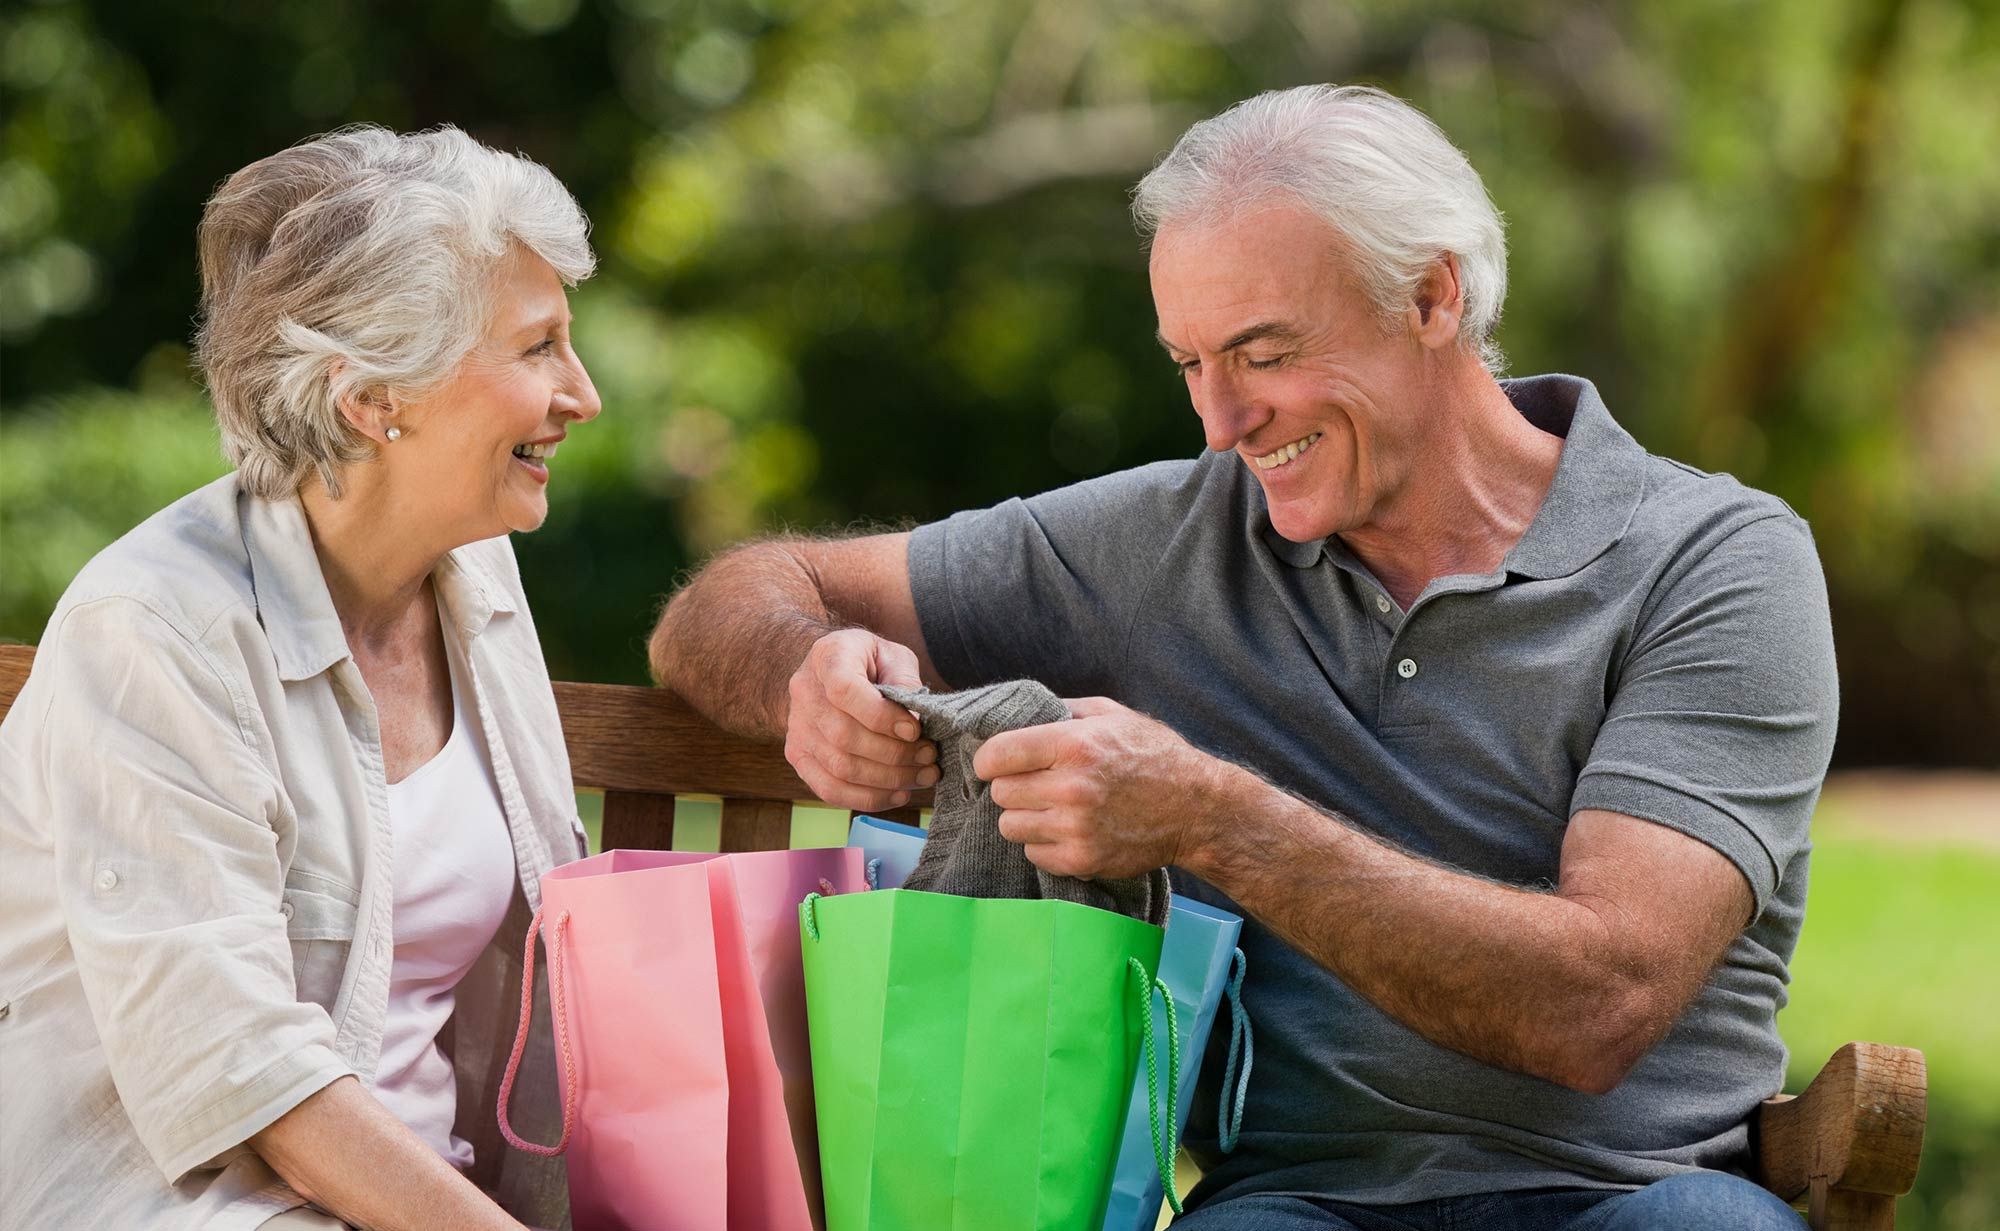 Active Aging Couple Looking at a Present